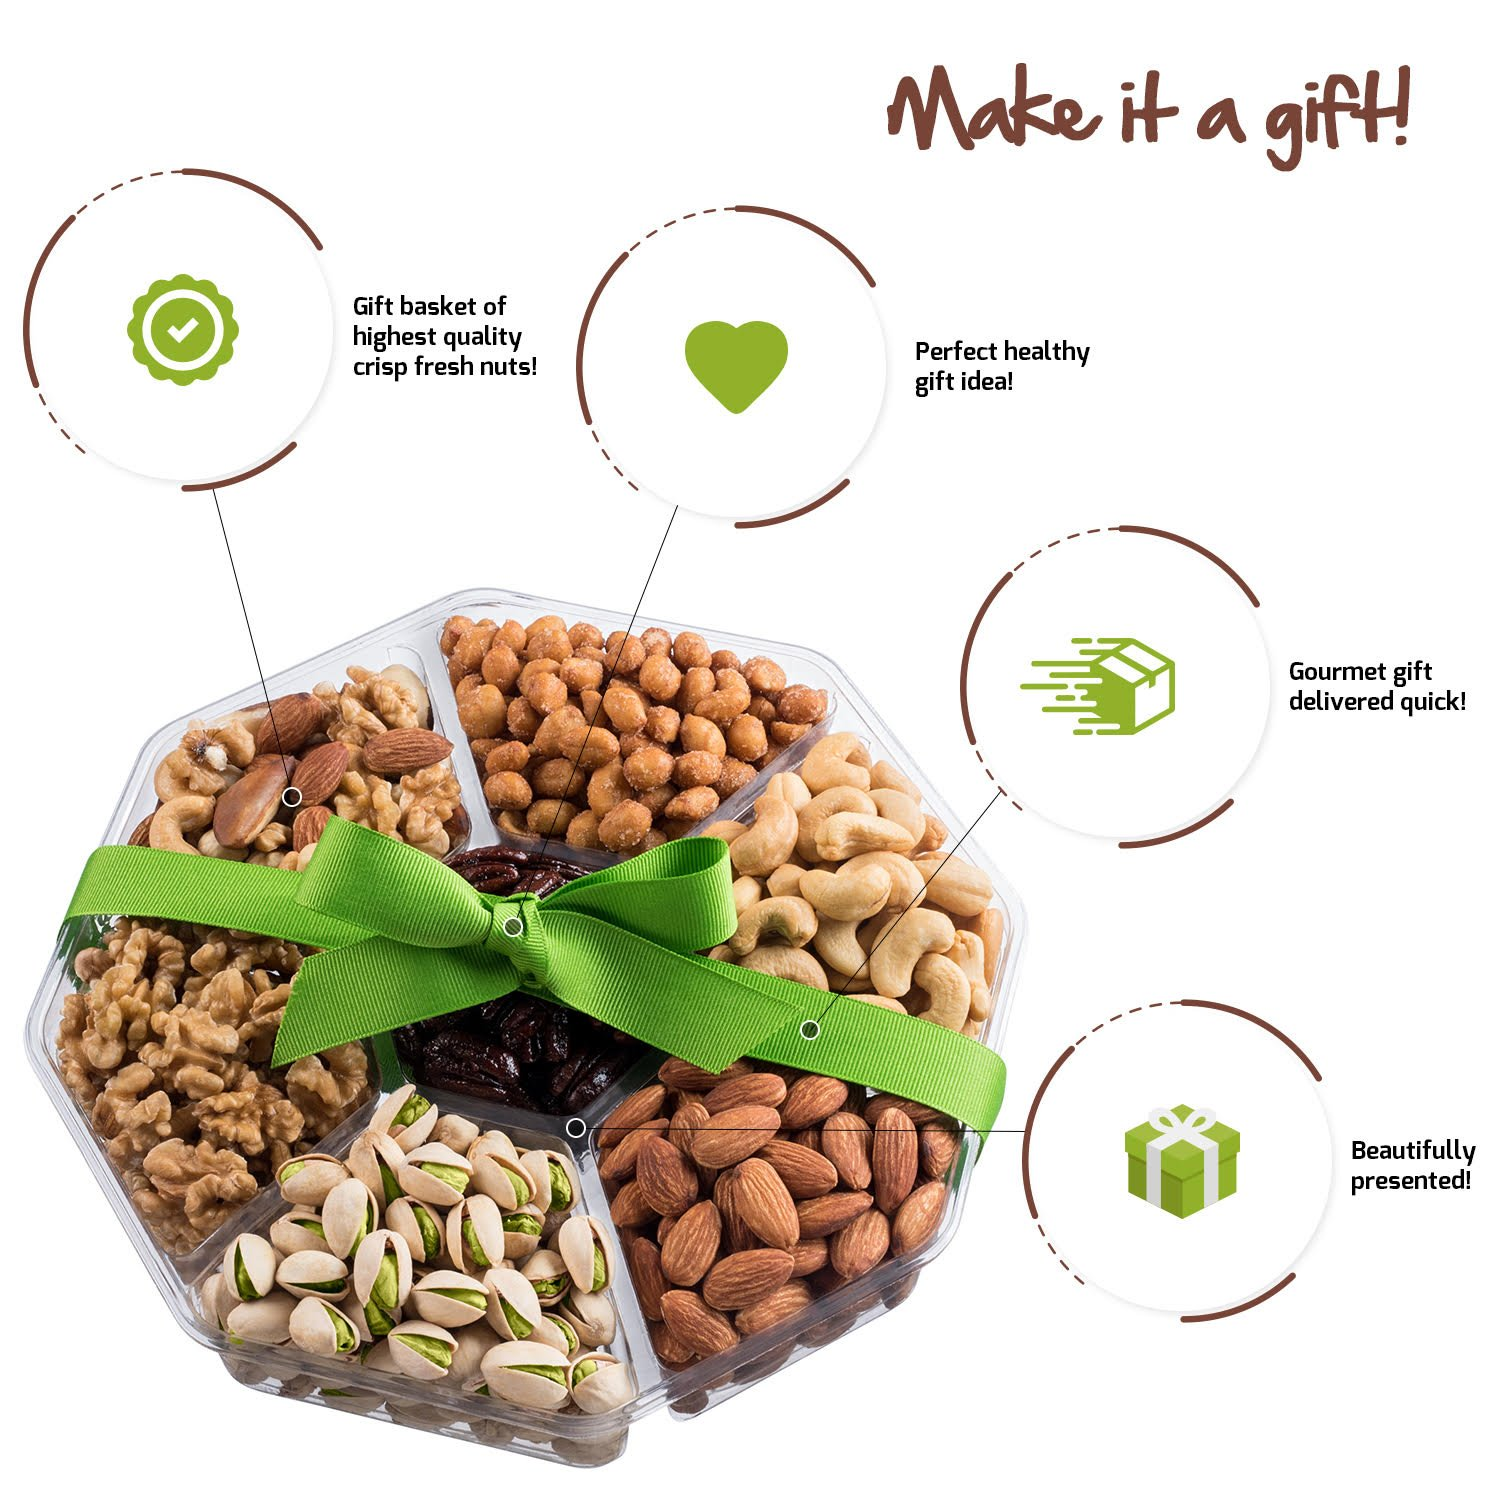 Mother's Day Nuts Gift Basket | Large 7-Sectional Delicious Variety Mixed Nuts Prime Gift | Healthy Fresh Gift Idea For Christmas, Easter, Mothers & Fathers Day, And Birthday by Nut Cravings (Image #3)